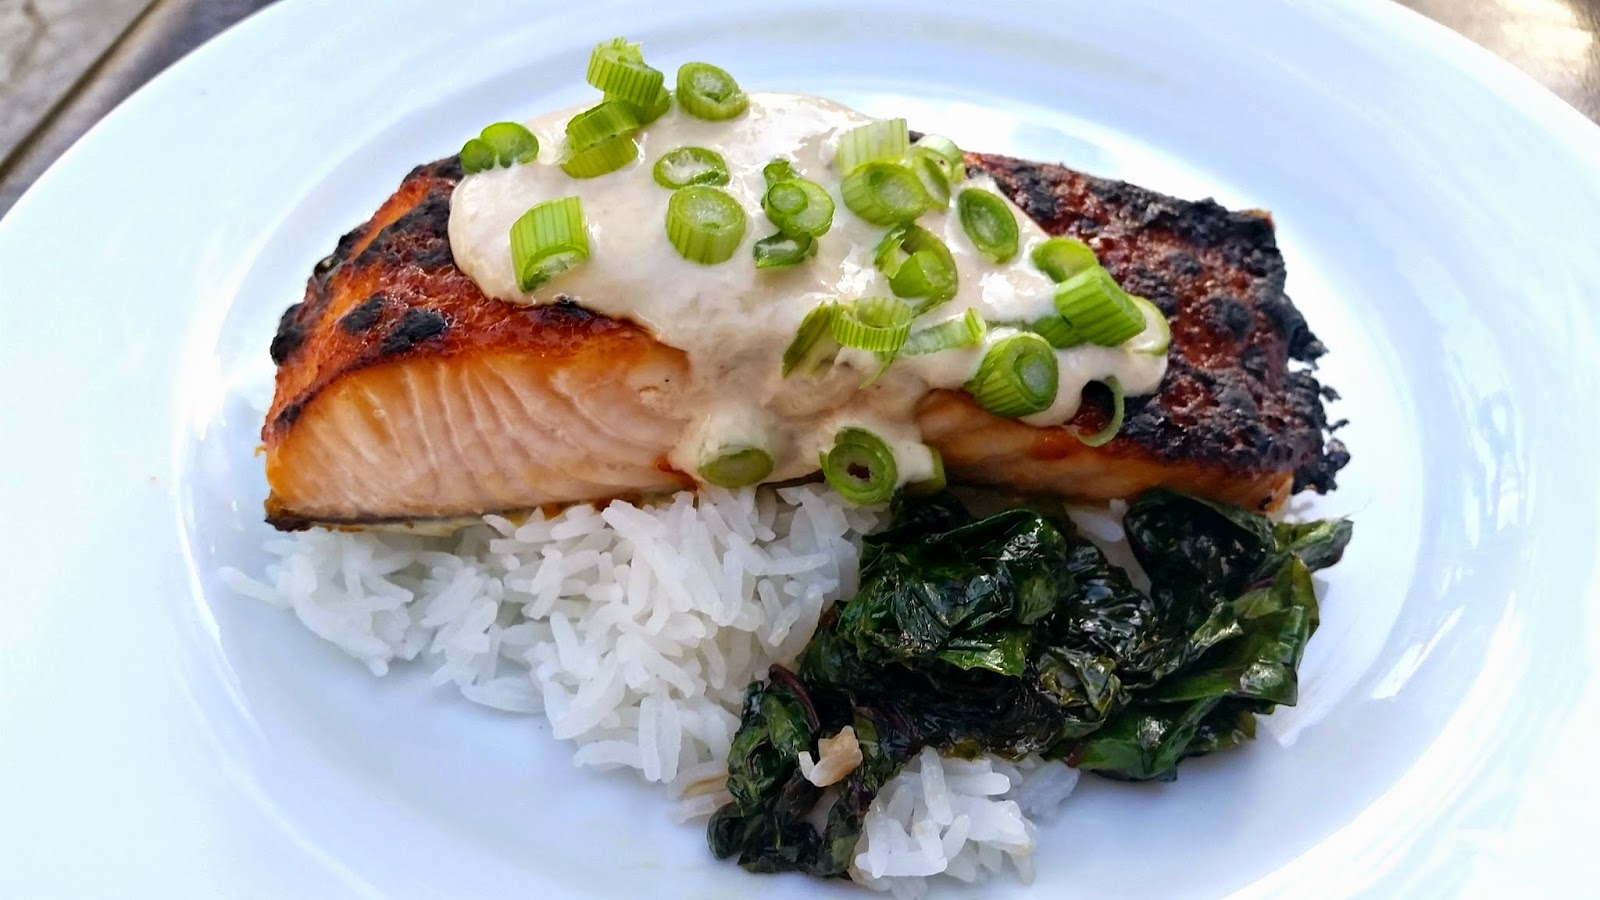 Chile-Garlic Broiled Salmon with Ginger Yogurt Sauce